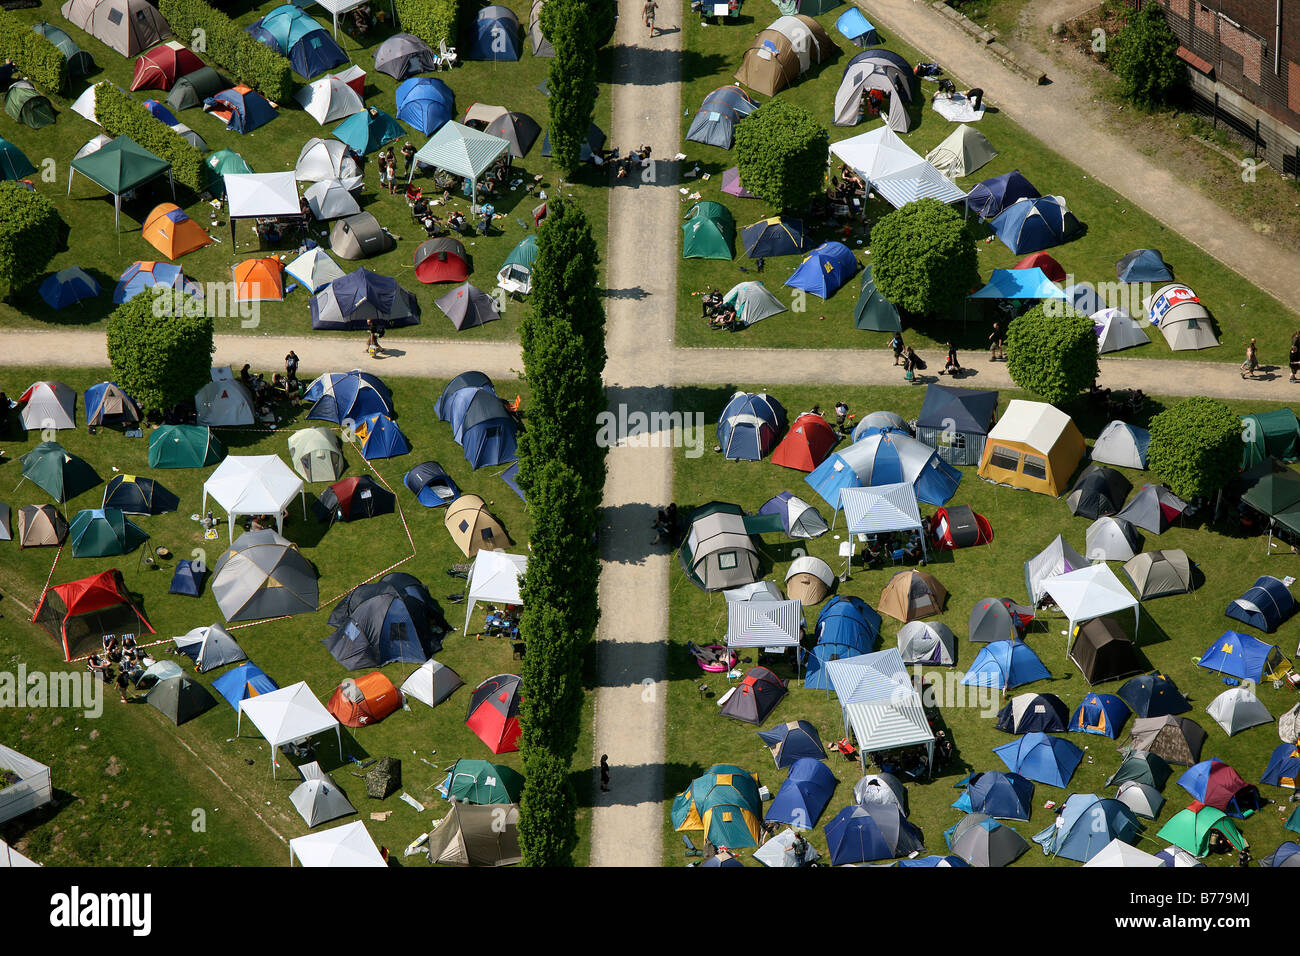 Aerial view, tents, crossing footpaths, Rock Hard Festival, Nordsternpark, Gelsenkirchen, Ruhr Area, North Rhine - Stock Image